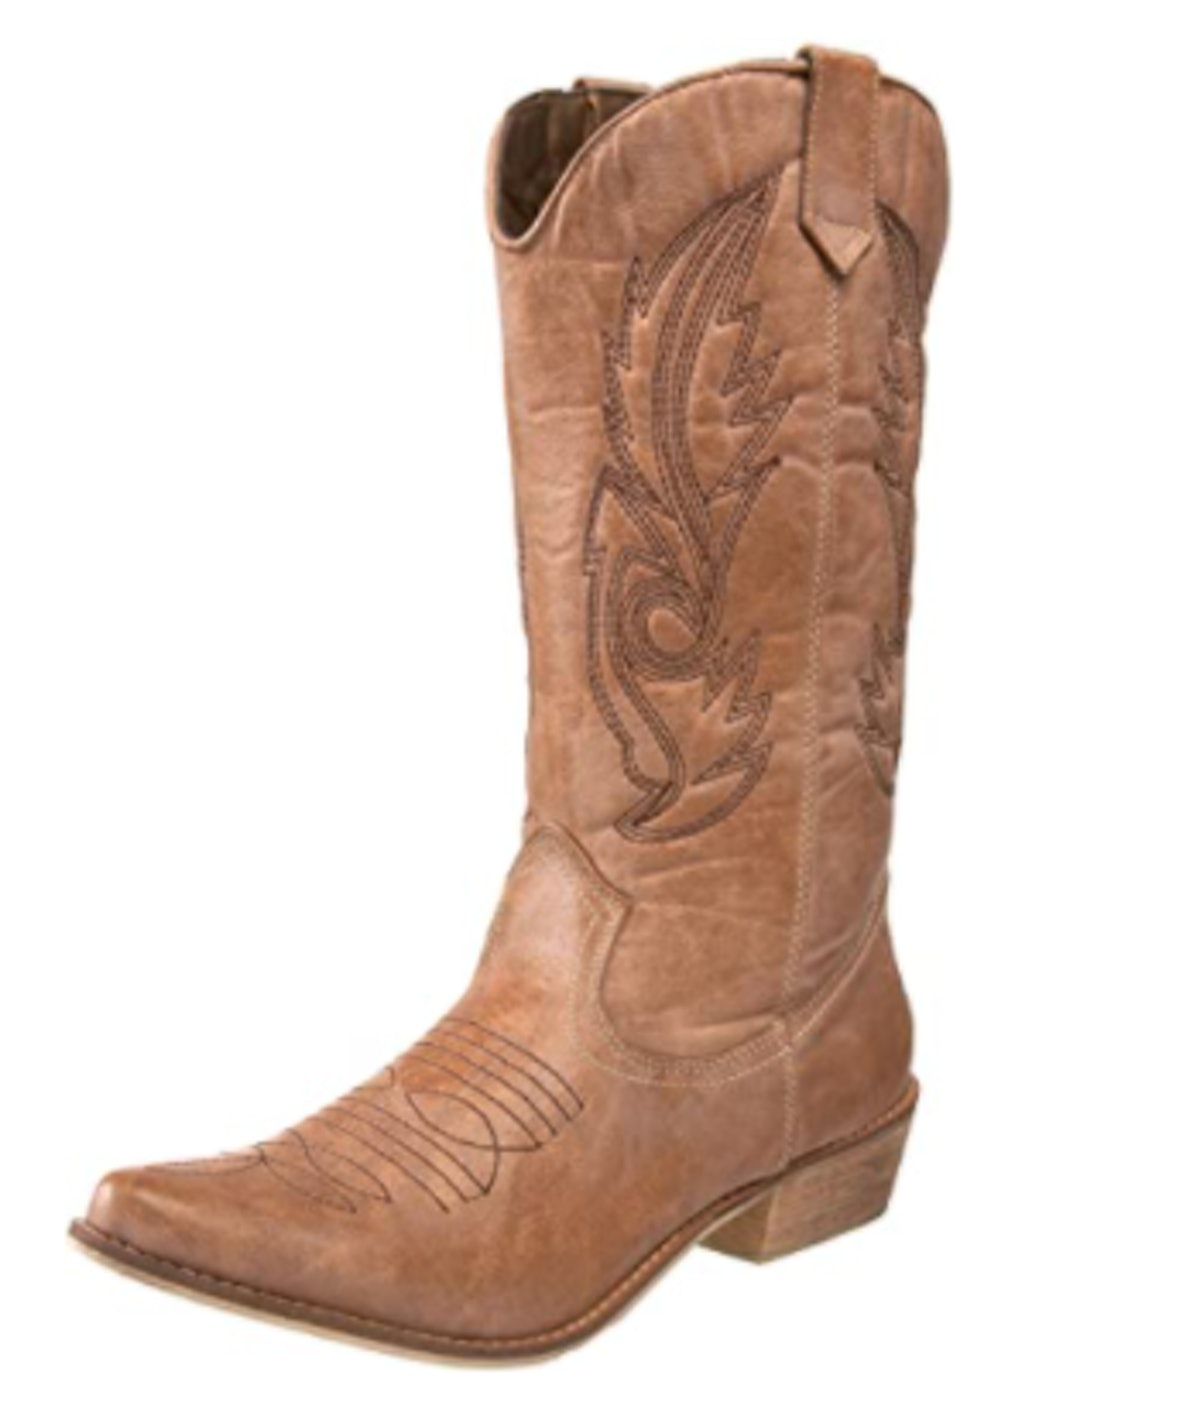 Coconuts By Matisse Gaucho Boot